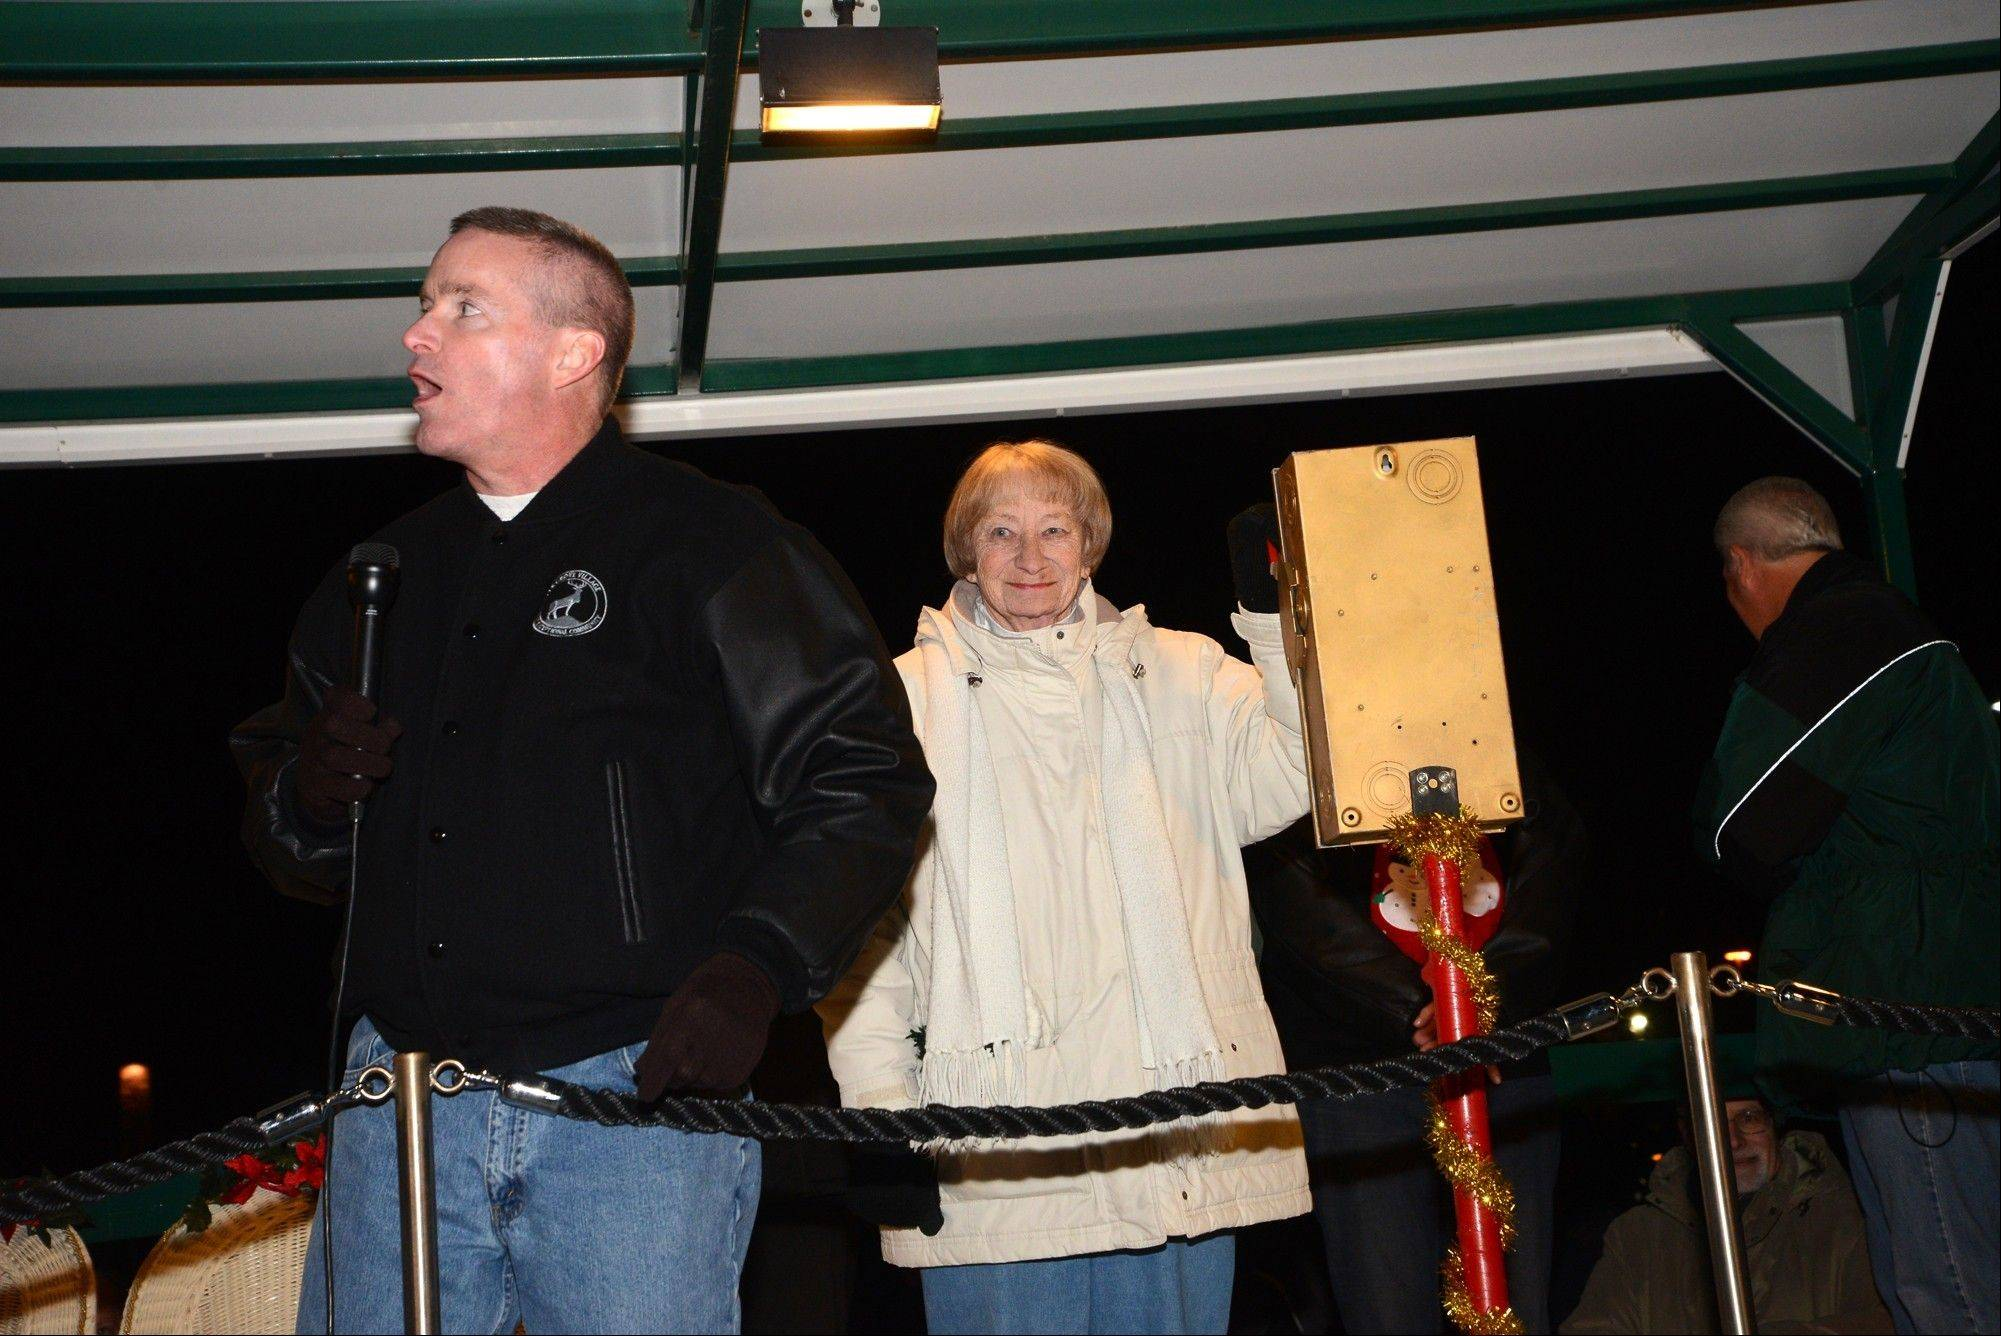 Former Elk Grove Township Supervisor Nanci Vanderwheel stands ready to flip the switch at Mayor Craig Johnson's direction Friday night during Elk Grove Village's tree-lighting ceremony.